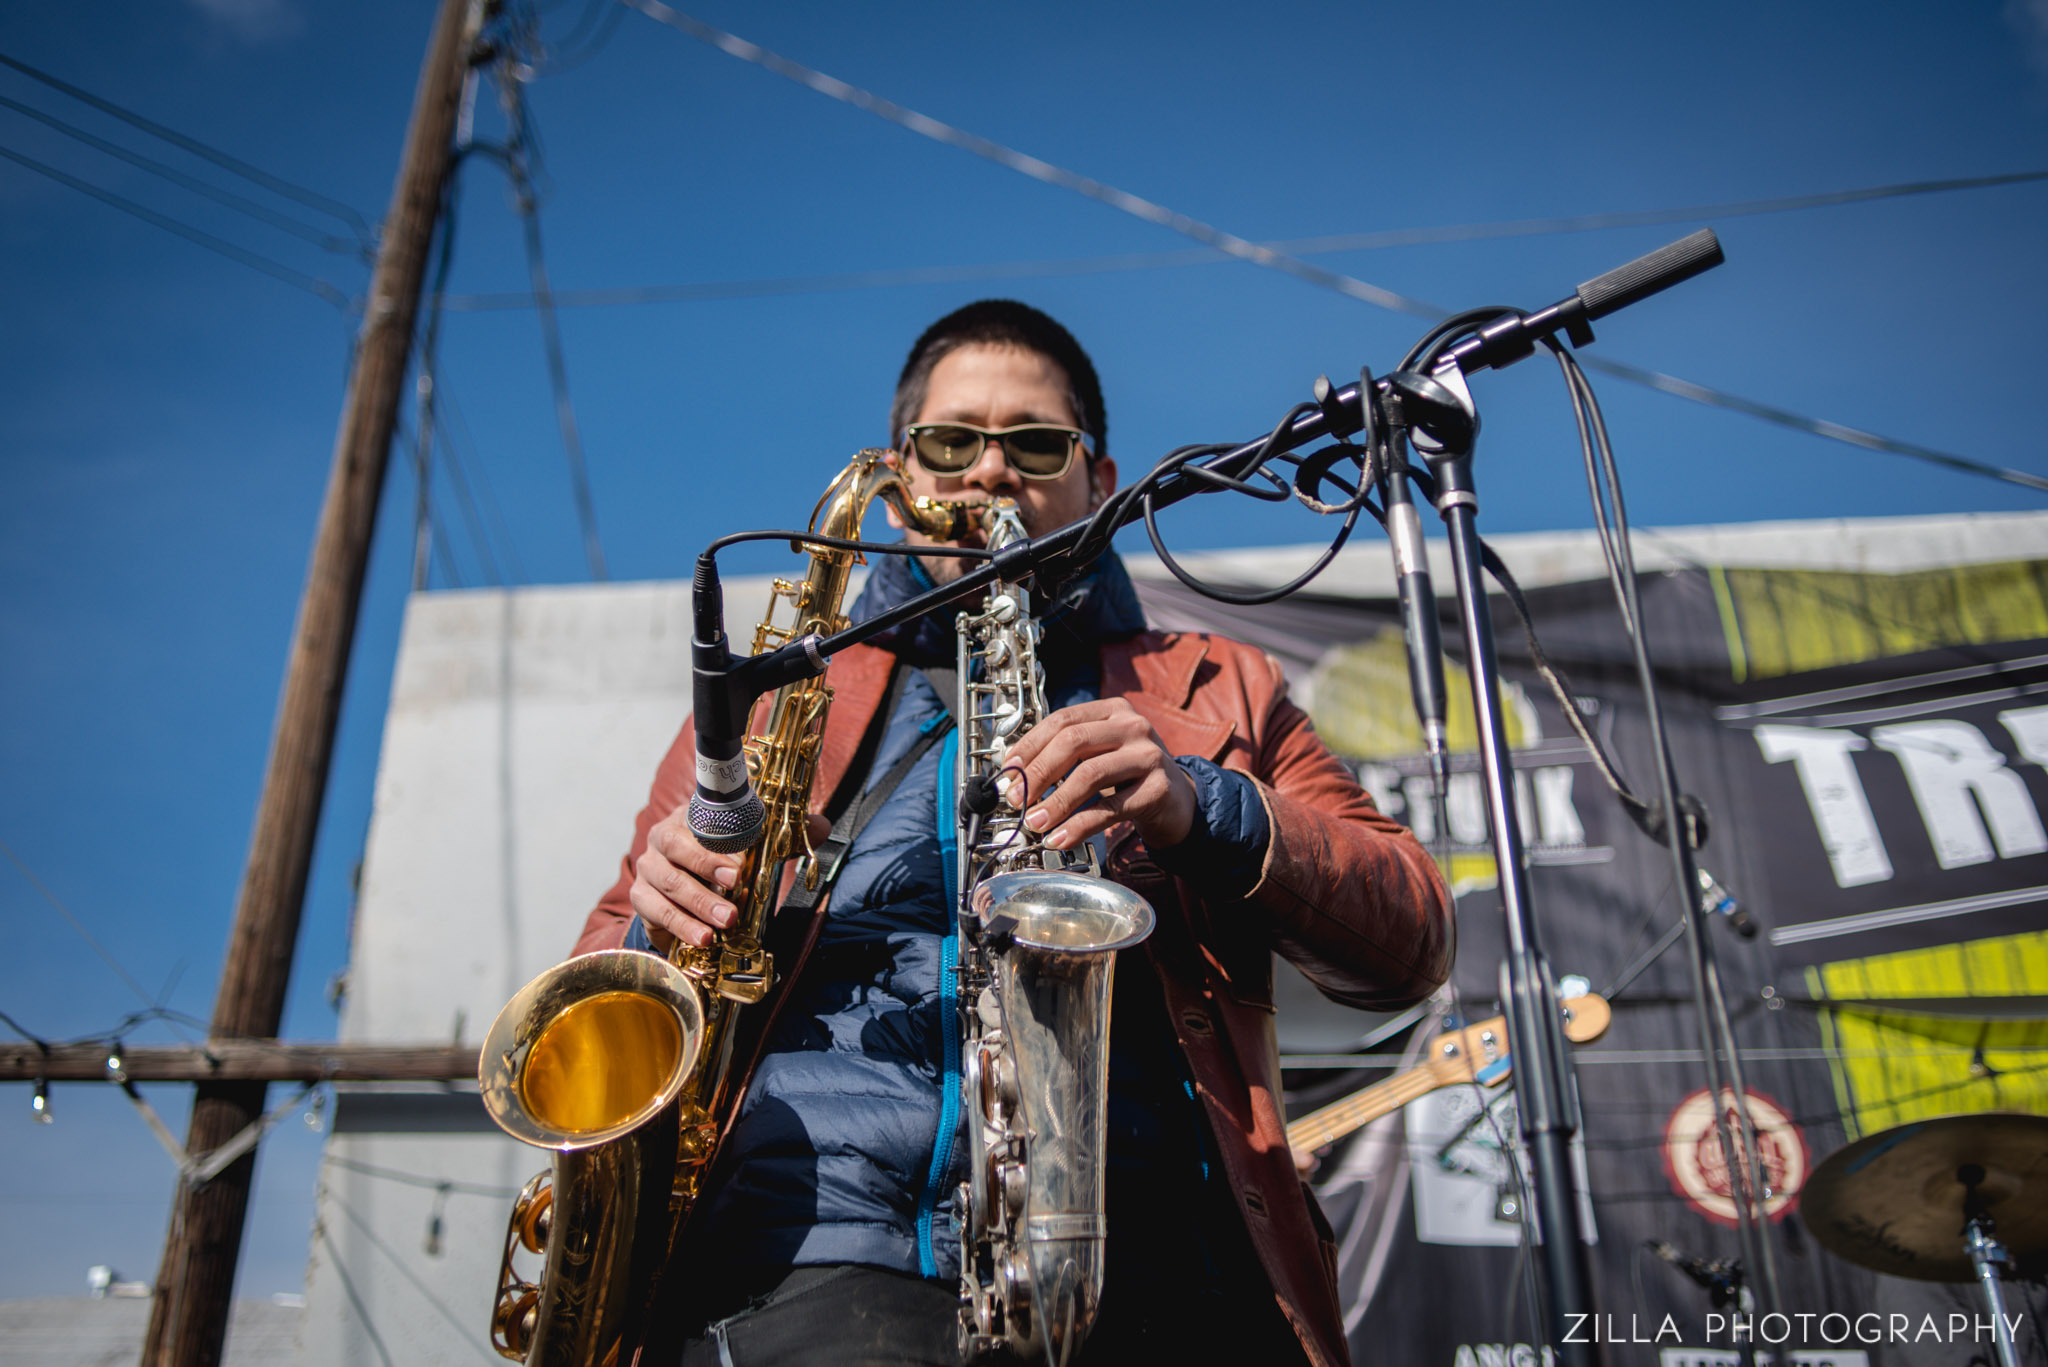 Zilla Photography-Treefort Music Fest 2016 Day 3-2.jpg